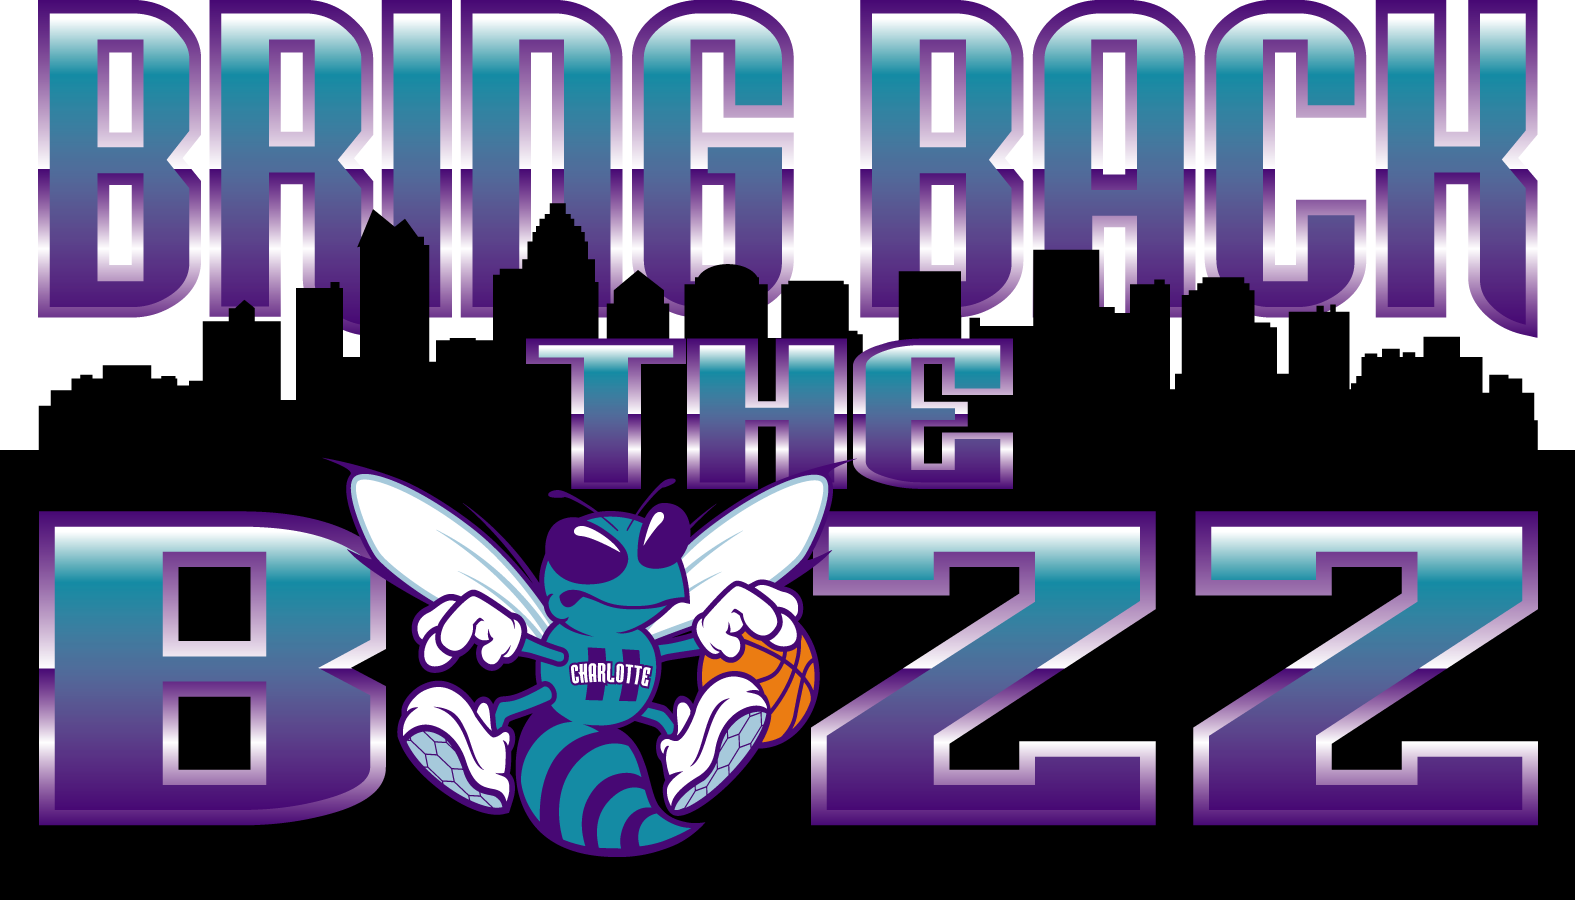 January 2013 Bring Back The Buzz Blog